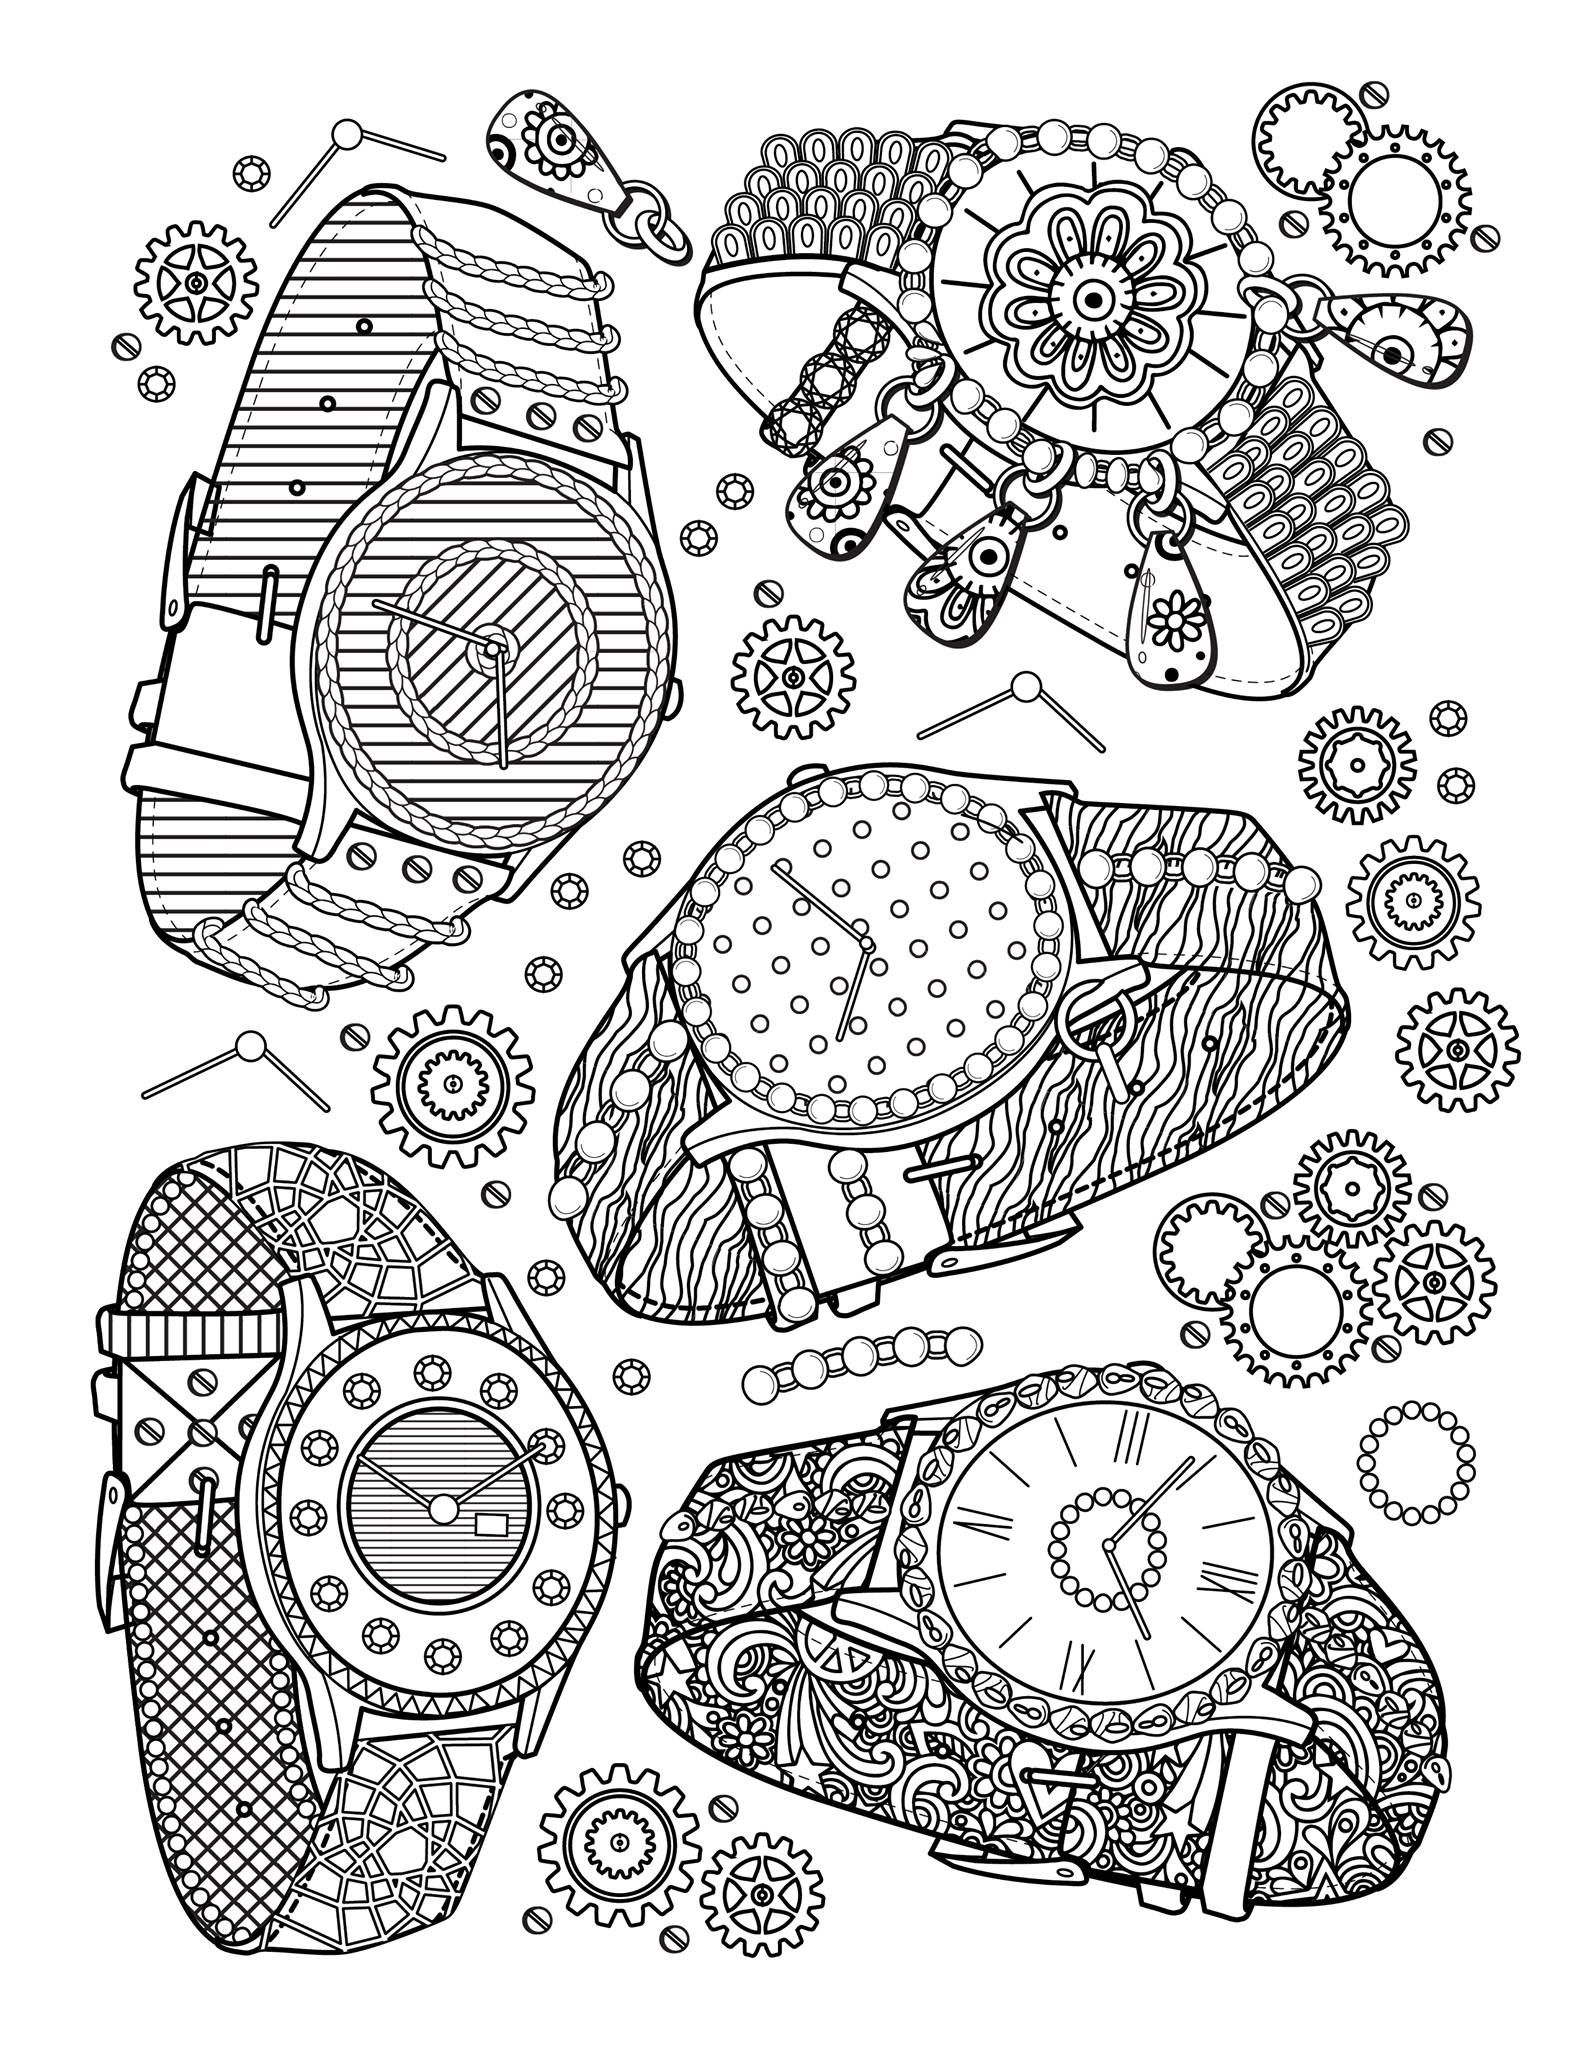 Best grown up coloring books -  Watches A Page From The Best Jewelry Adult Coloring Book